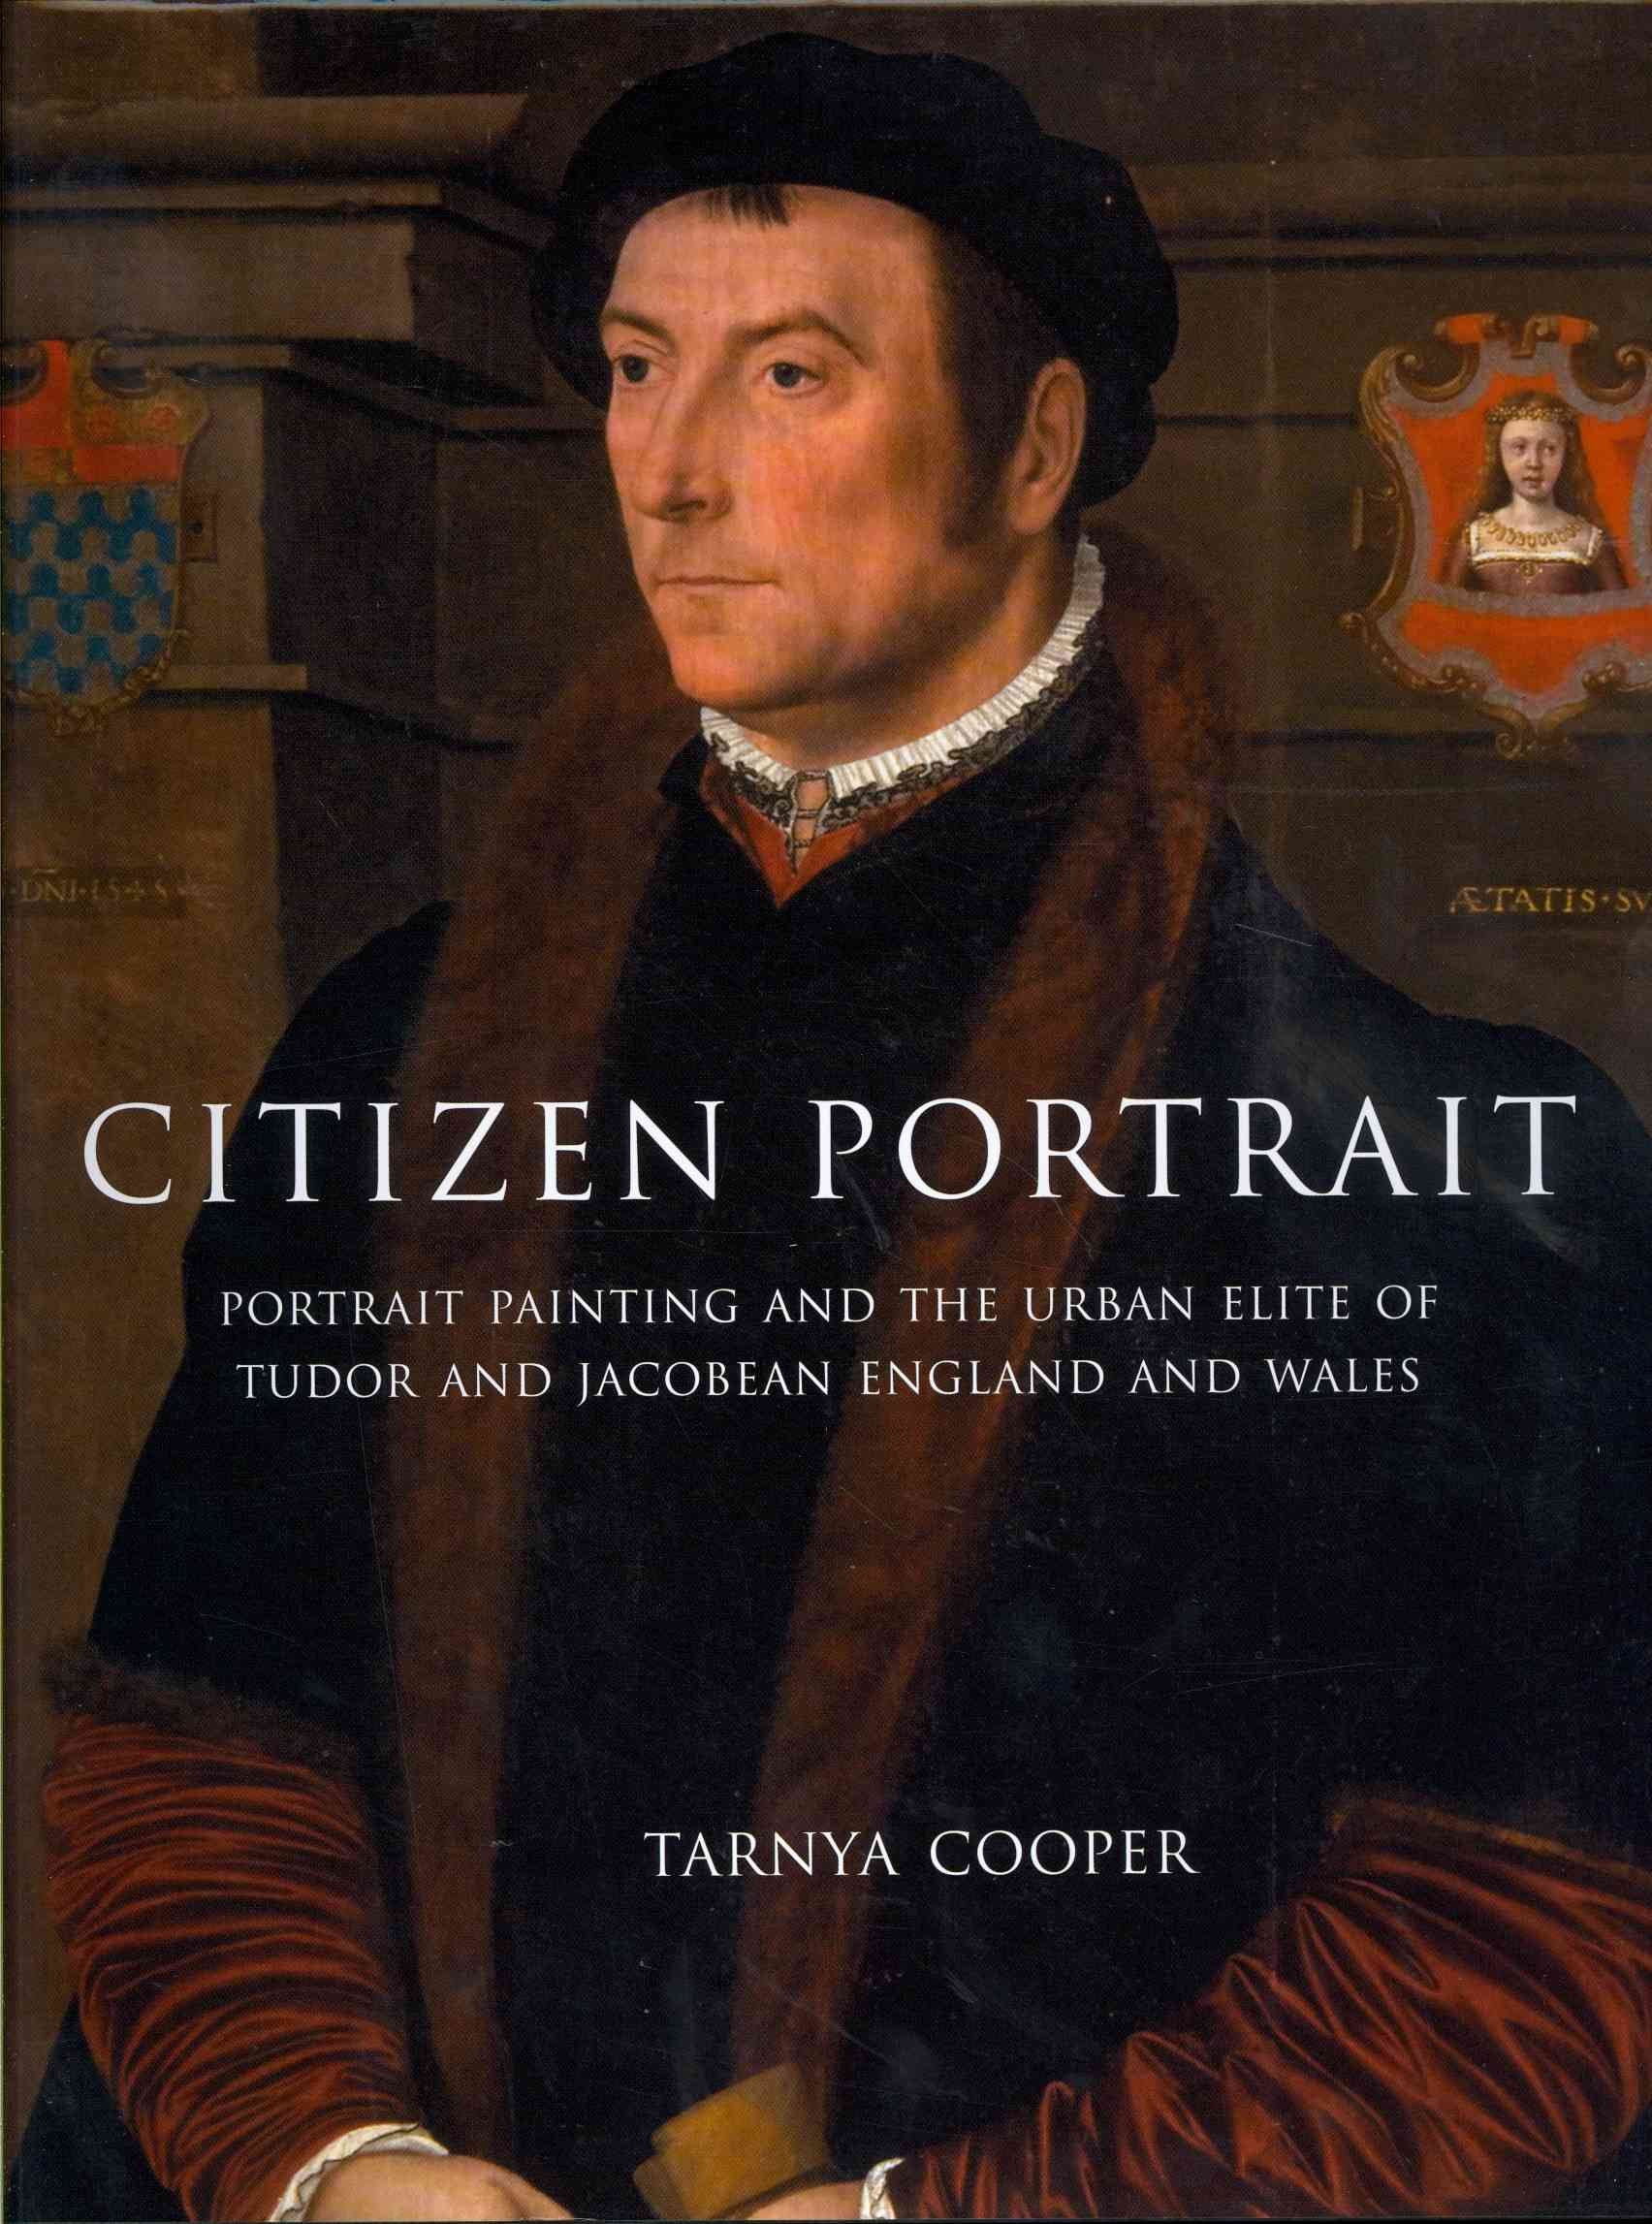 Citizen Portrait: Portrait Painting and the Urban Elite of Tudor and Jacobean England and Wales (Hardcover)